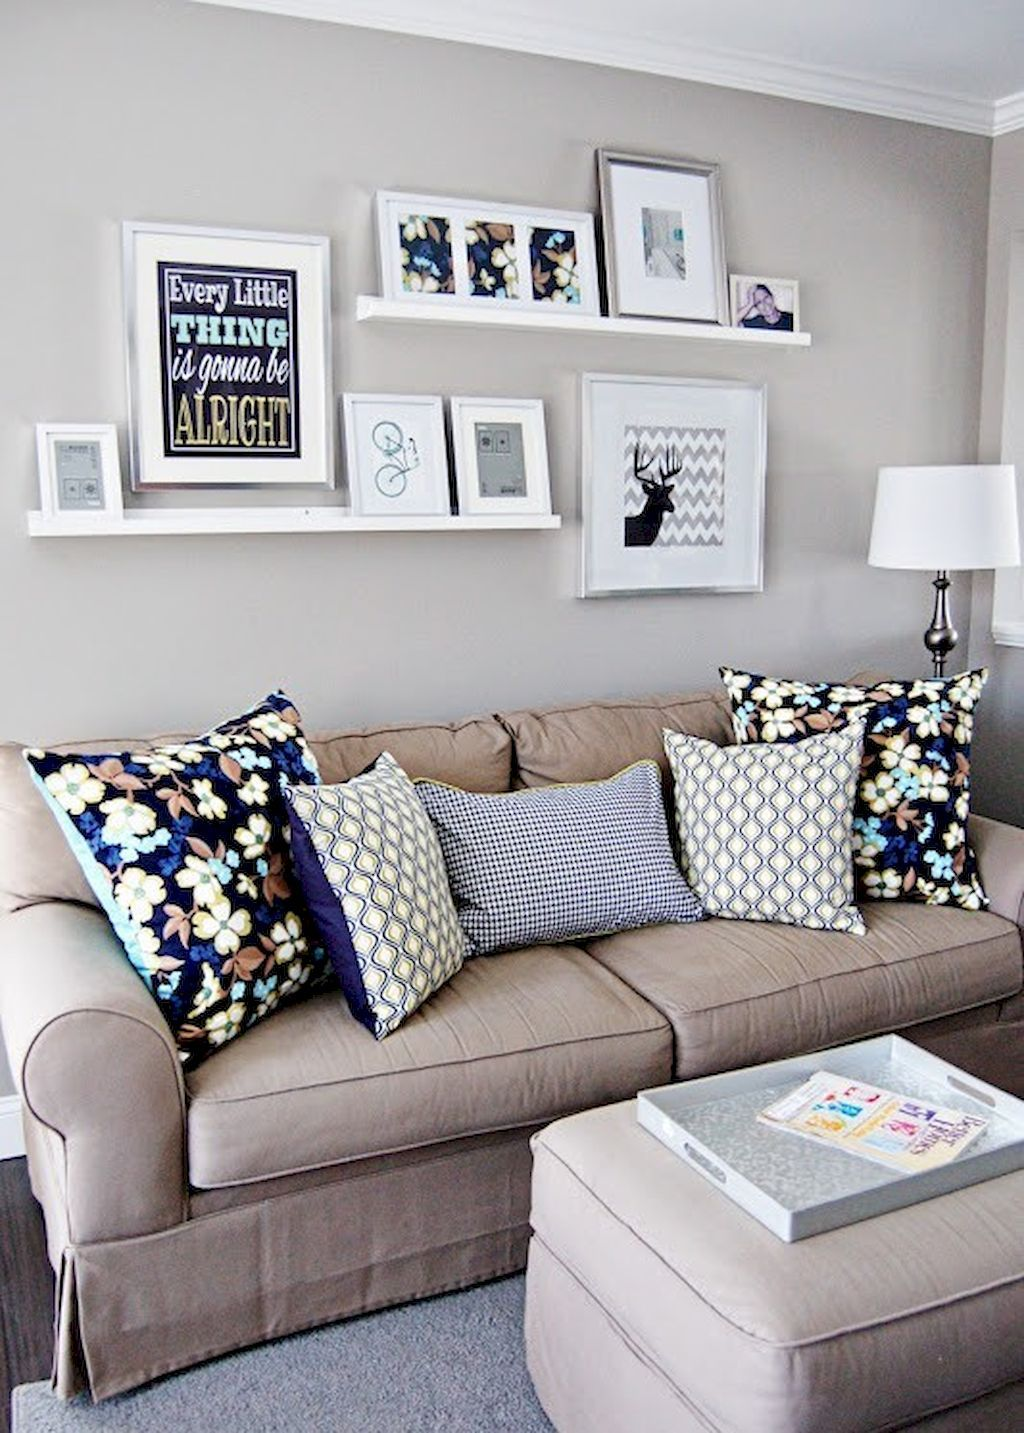 40 Beautiful And Cute Apartment Decorating Ideas On A Budget Living Room